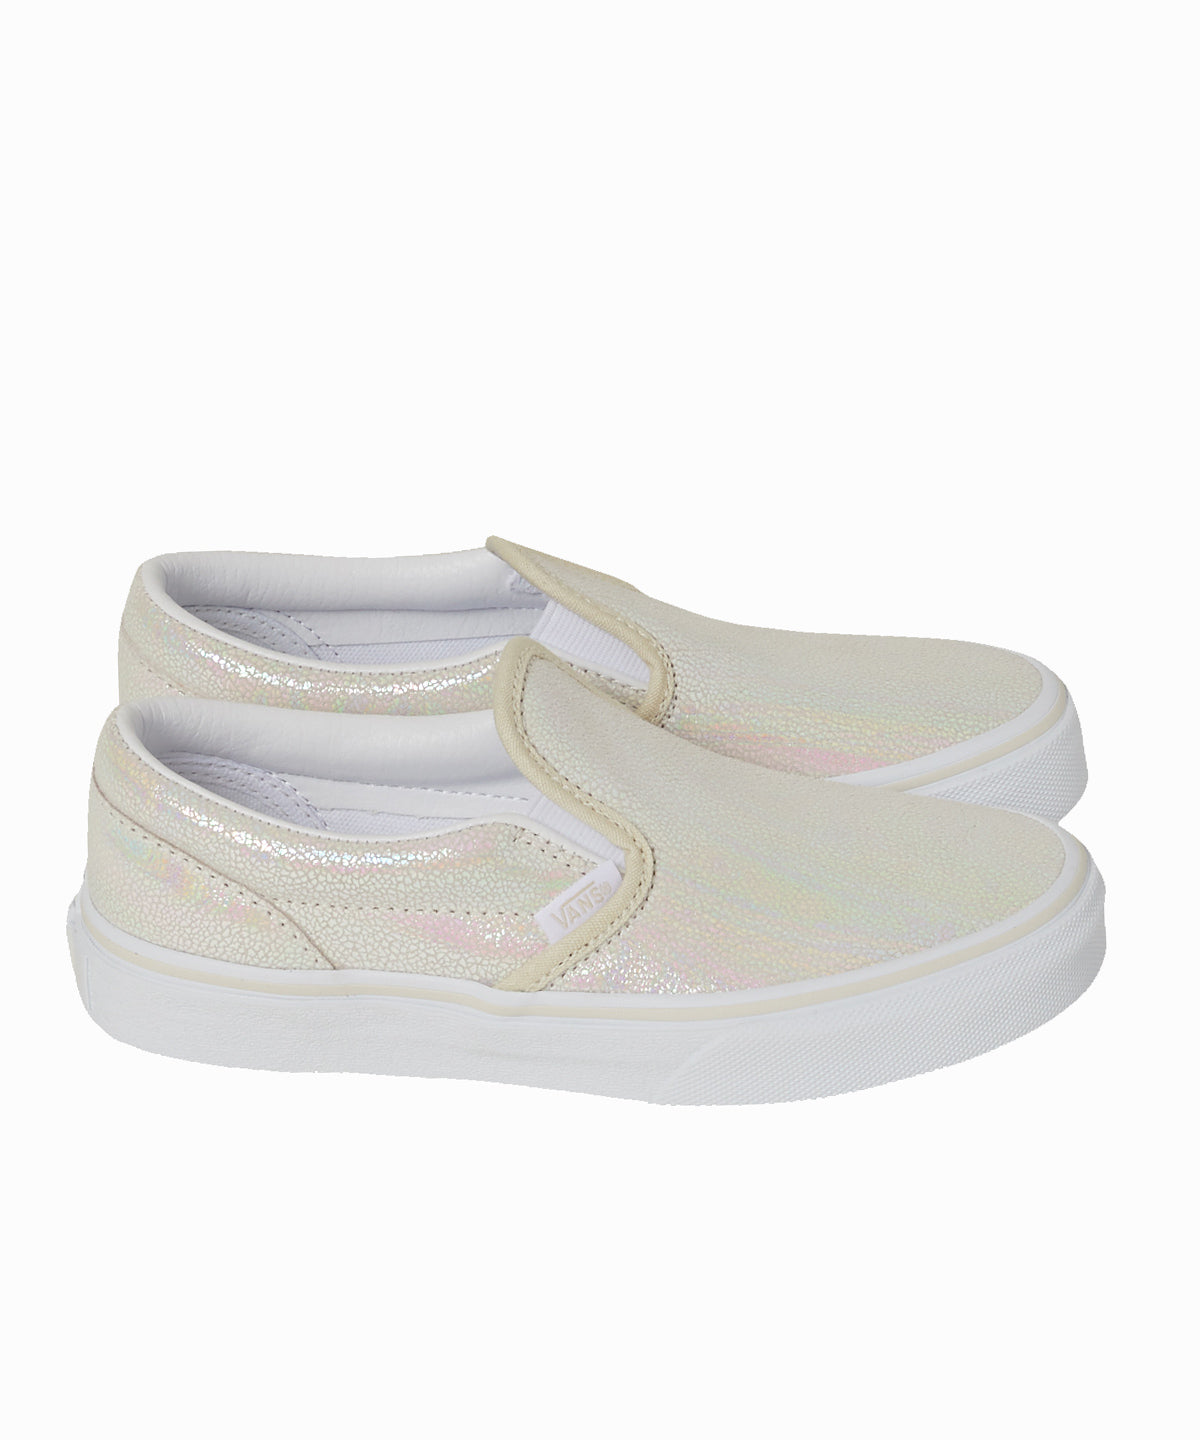 Classic Oil Slick Slip-On Sneakers